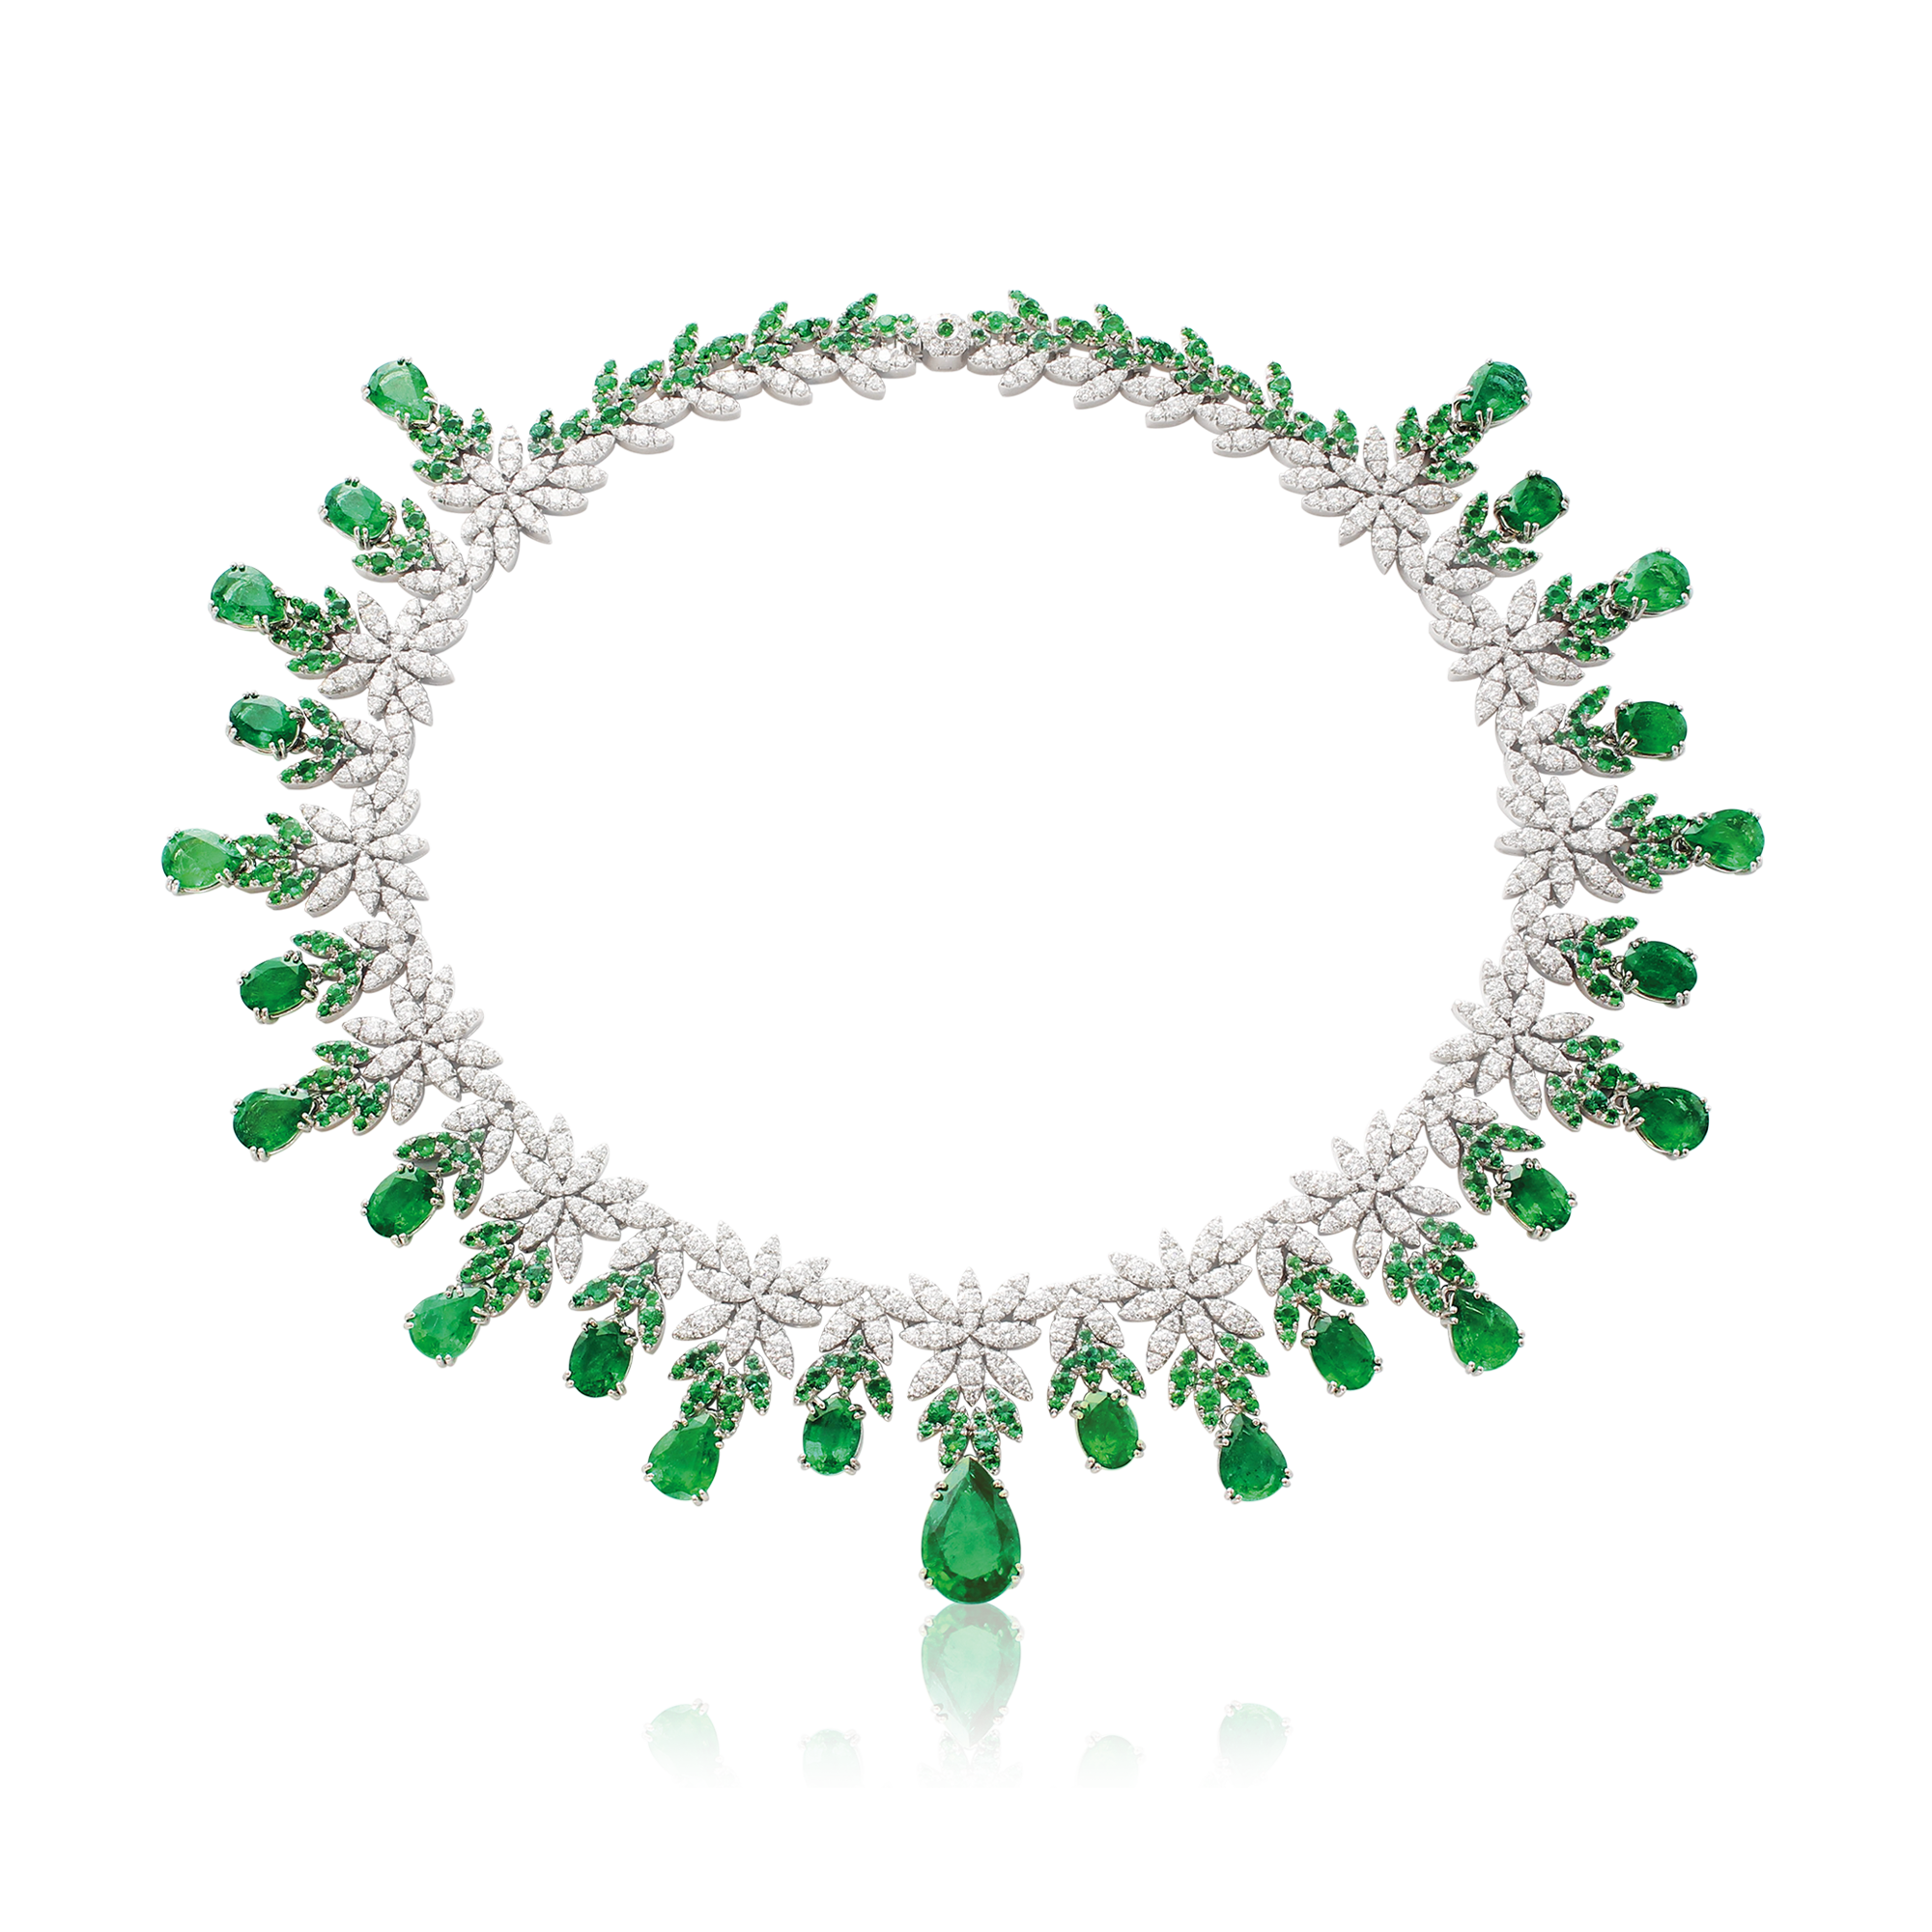 18k White Gold Ghirlanda Haute Couture Necklace with Emeralds and Diamonds